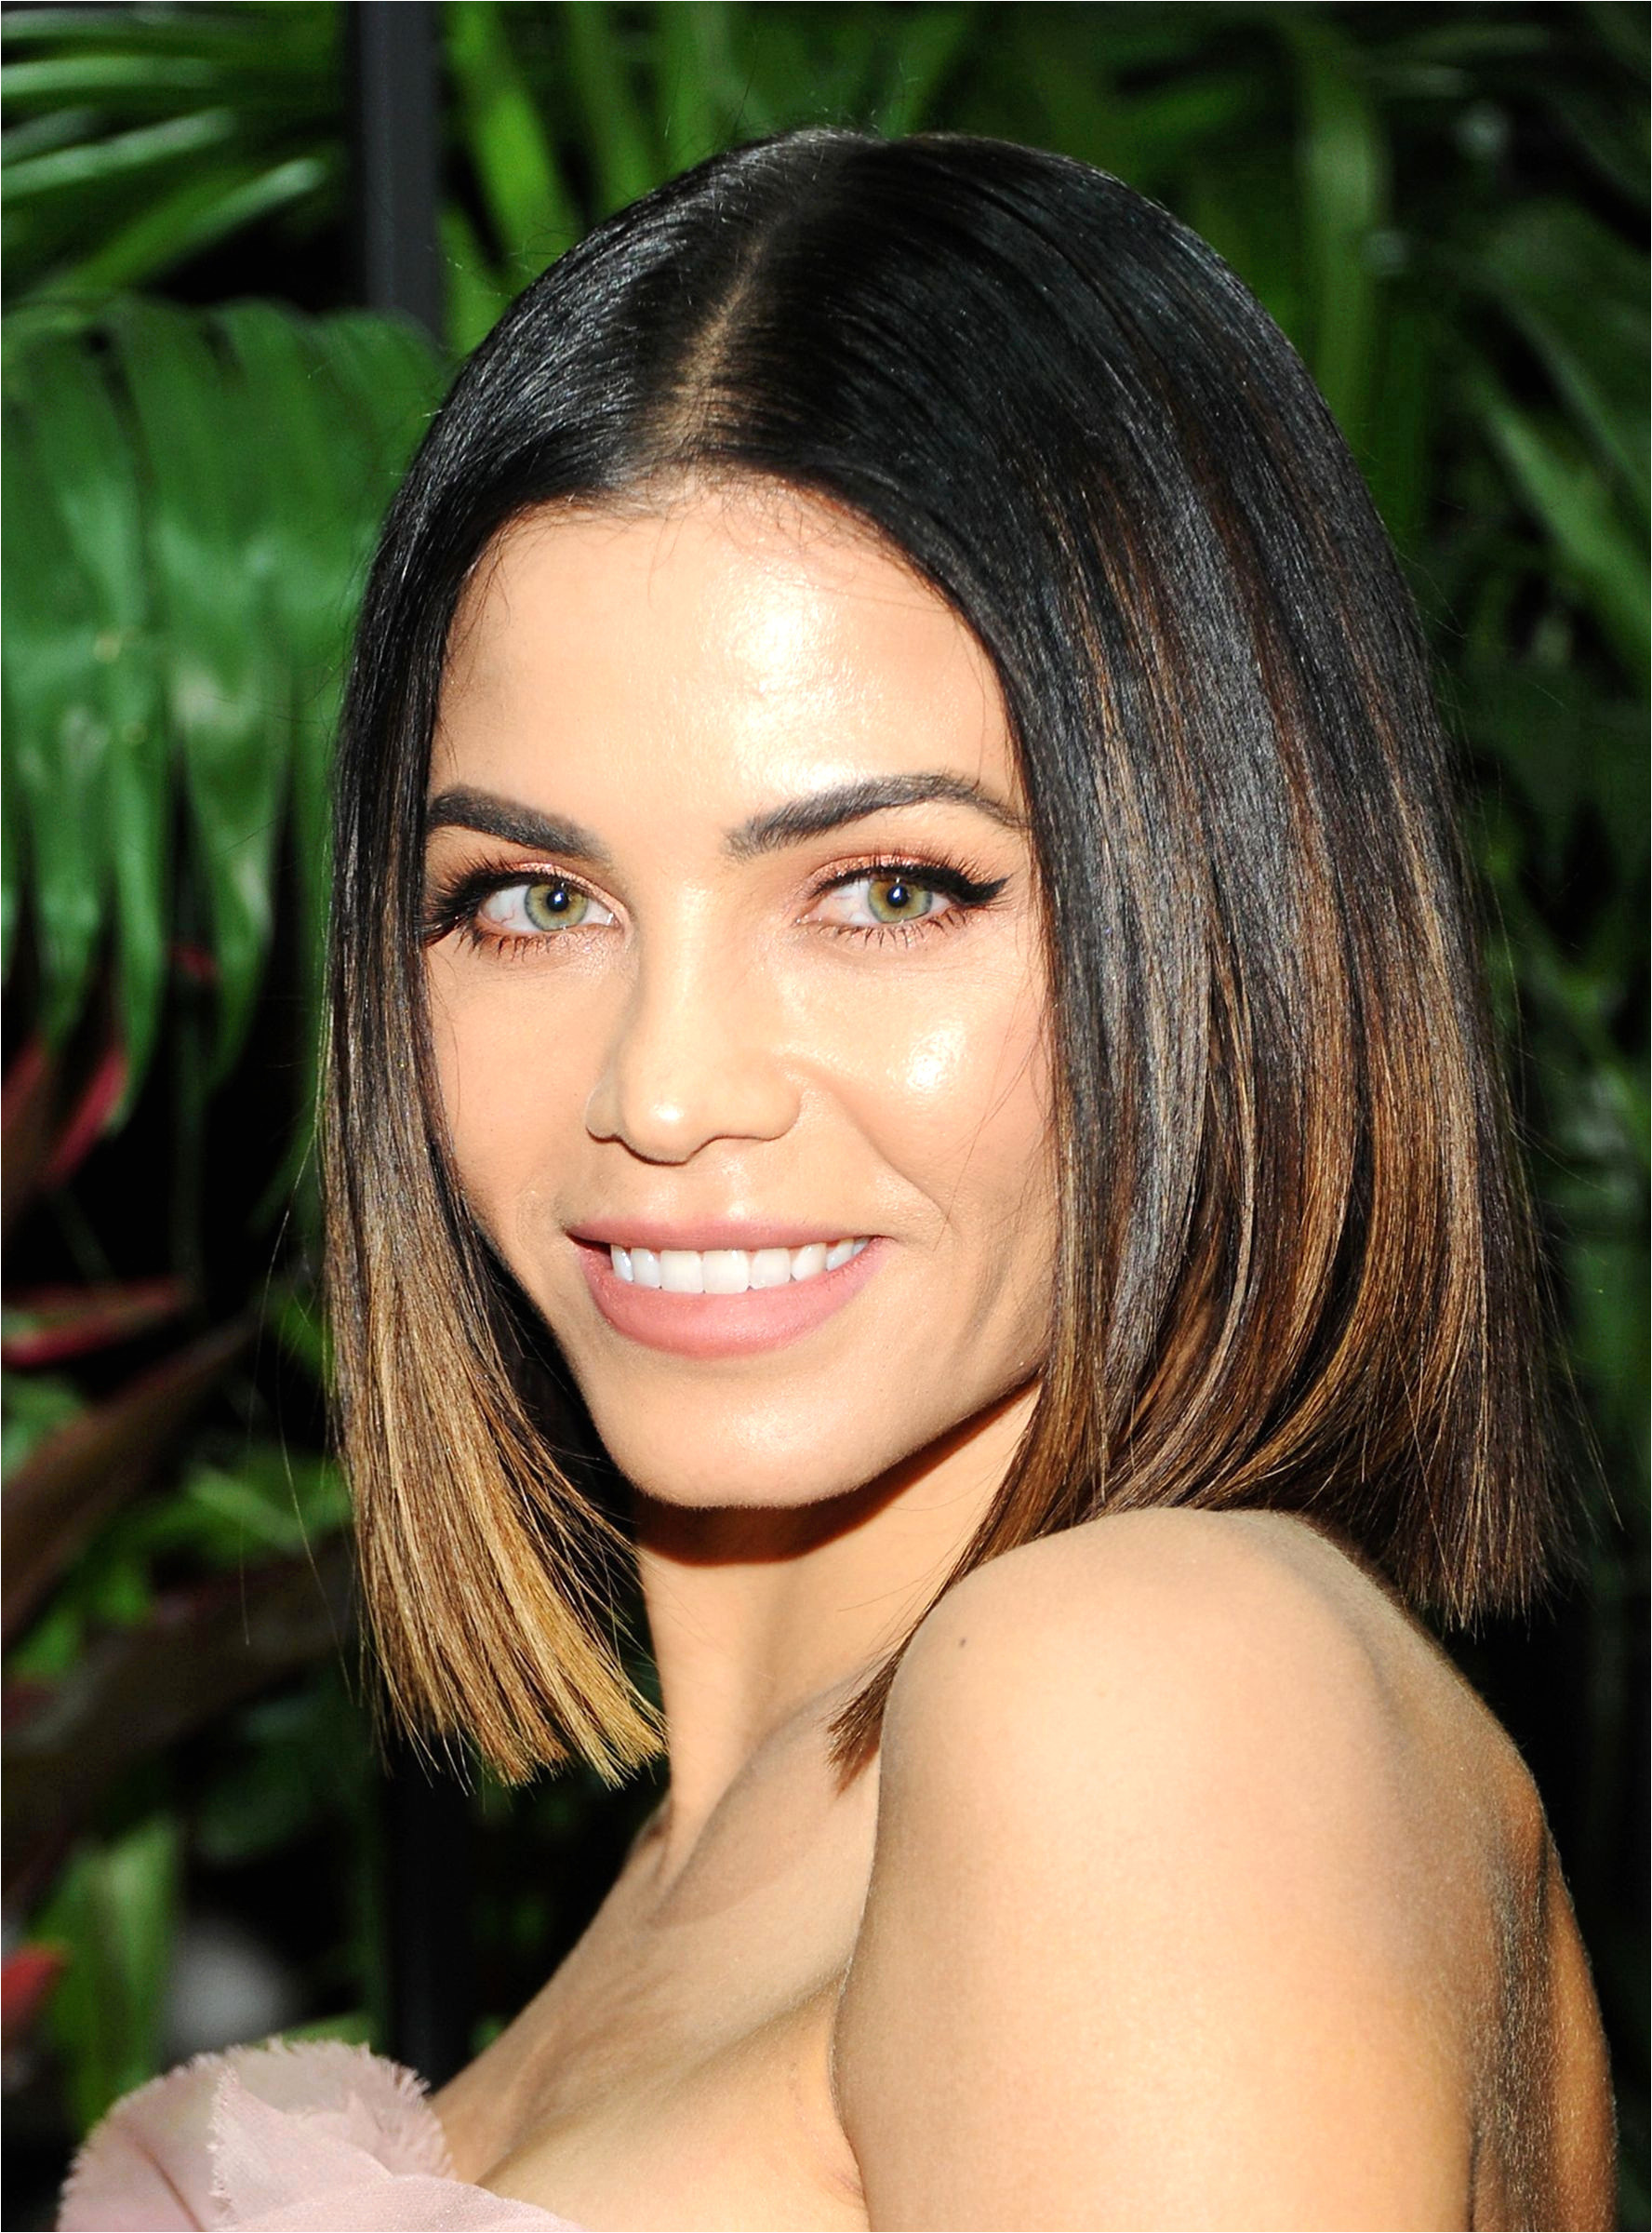 77 Hairstyles for Short Hair for School Unique Back Short Hair Hairstyles New Festival Hairstyles 0d